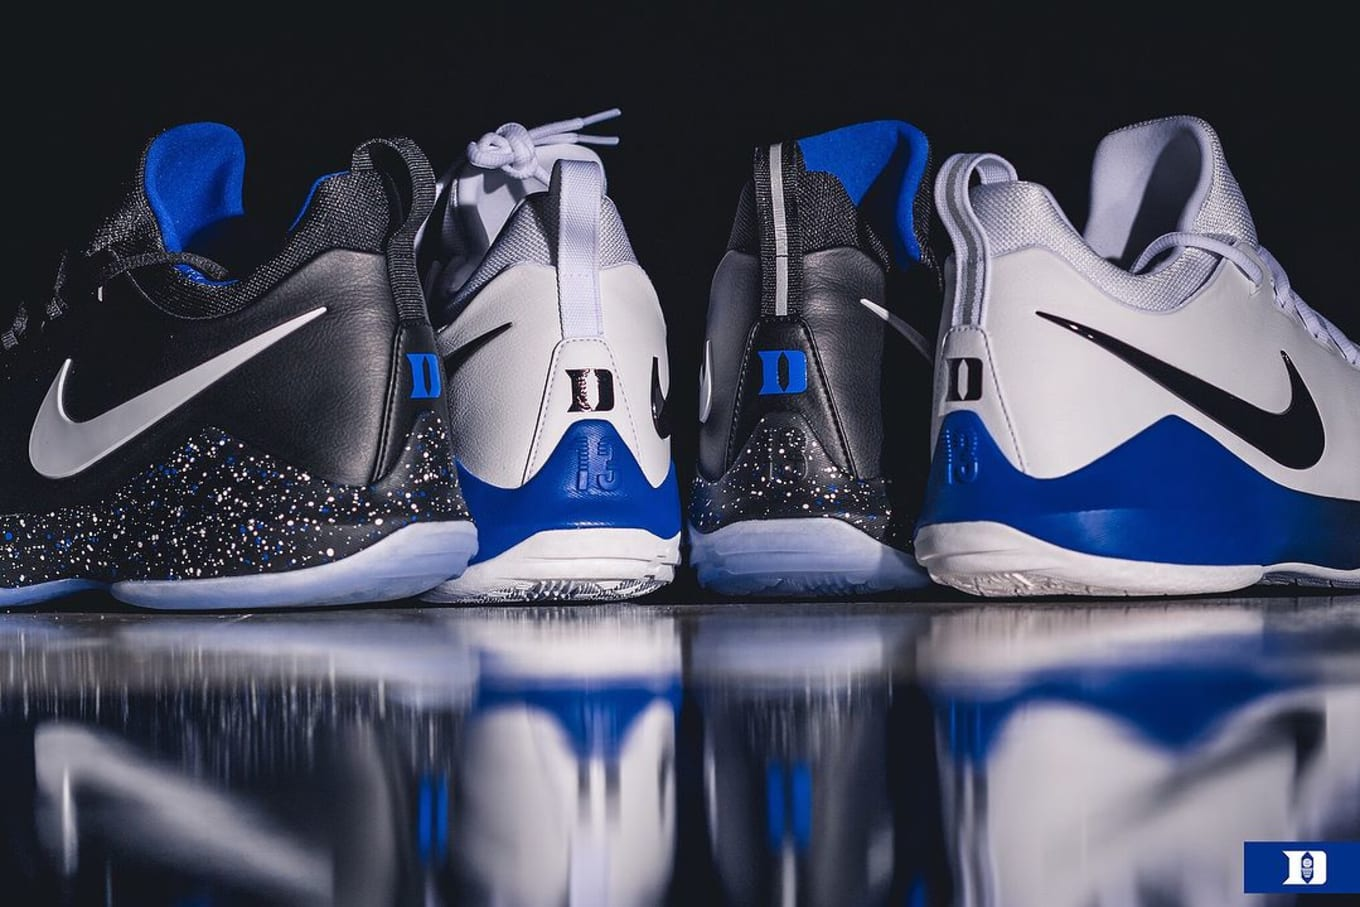 f6c3e166440ac Duke Shows Off Exclusive Nike PG1 Colorways